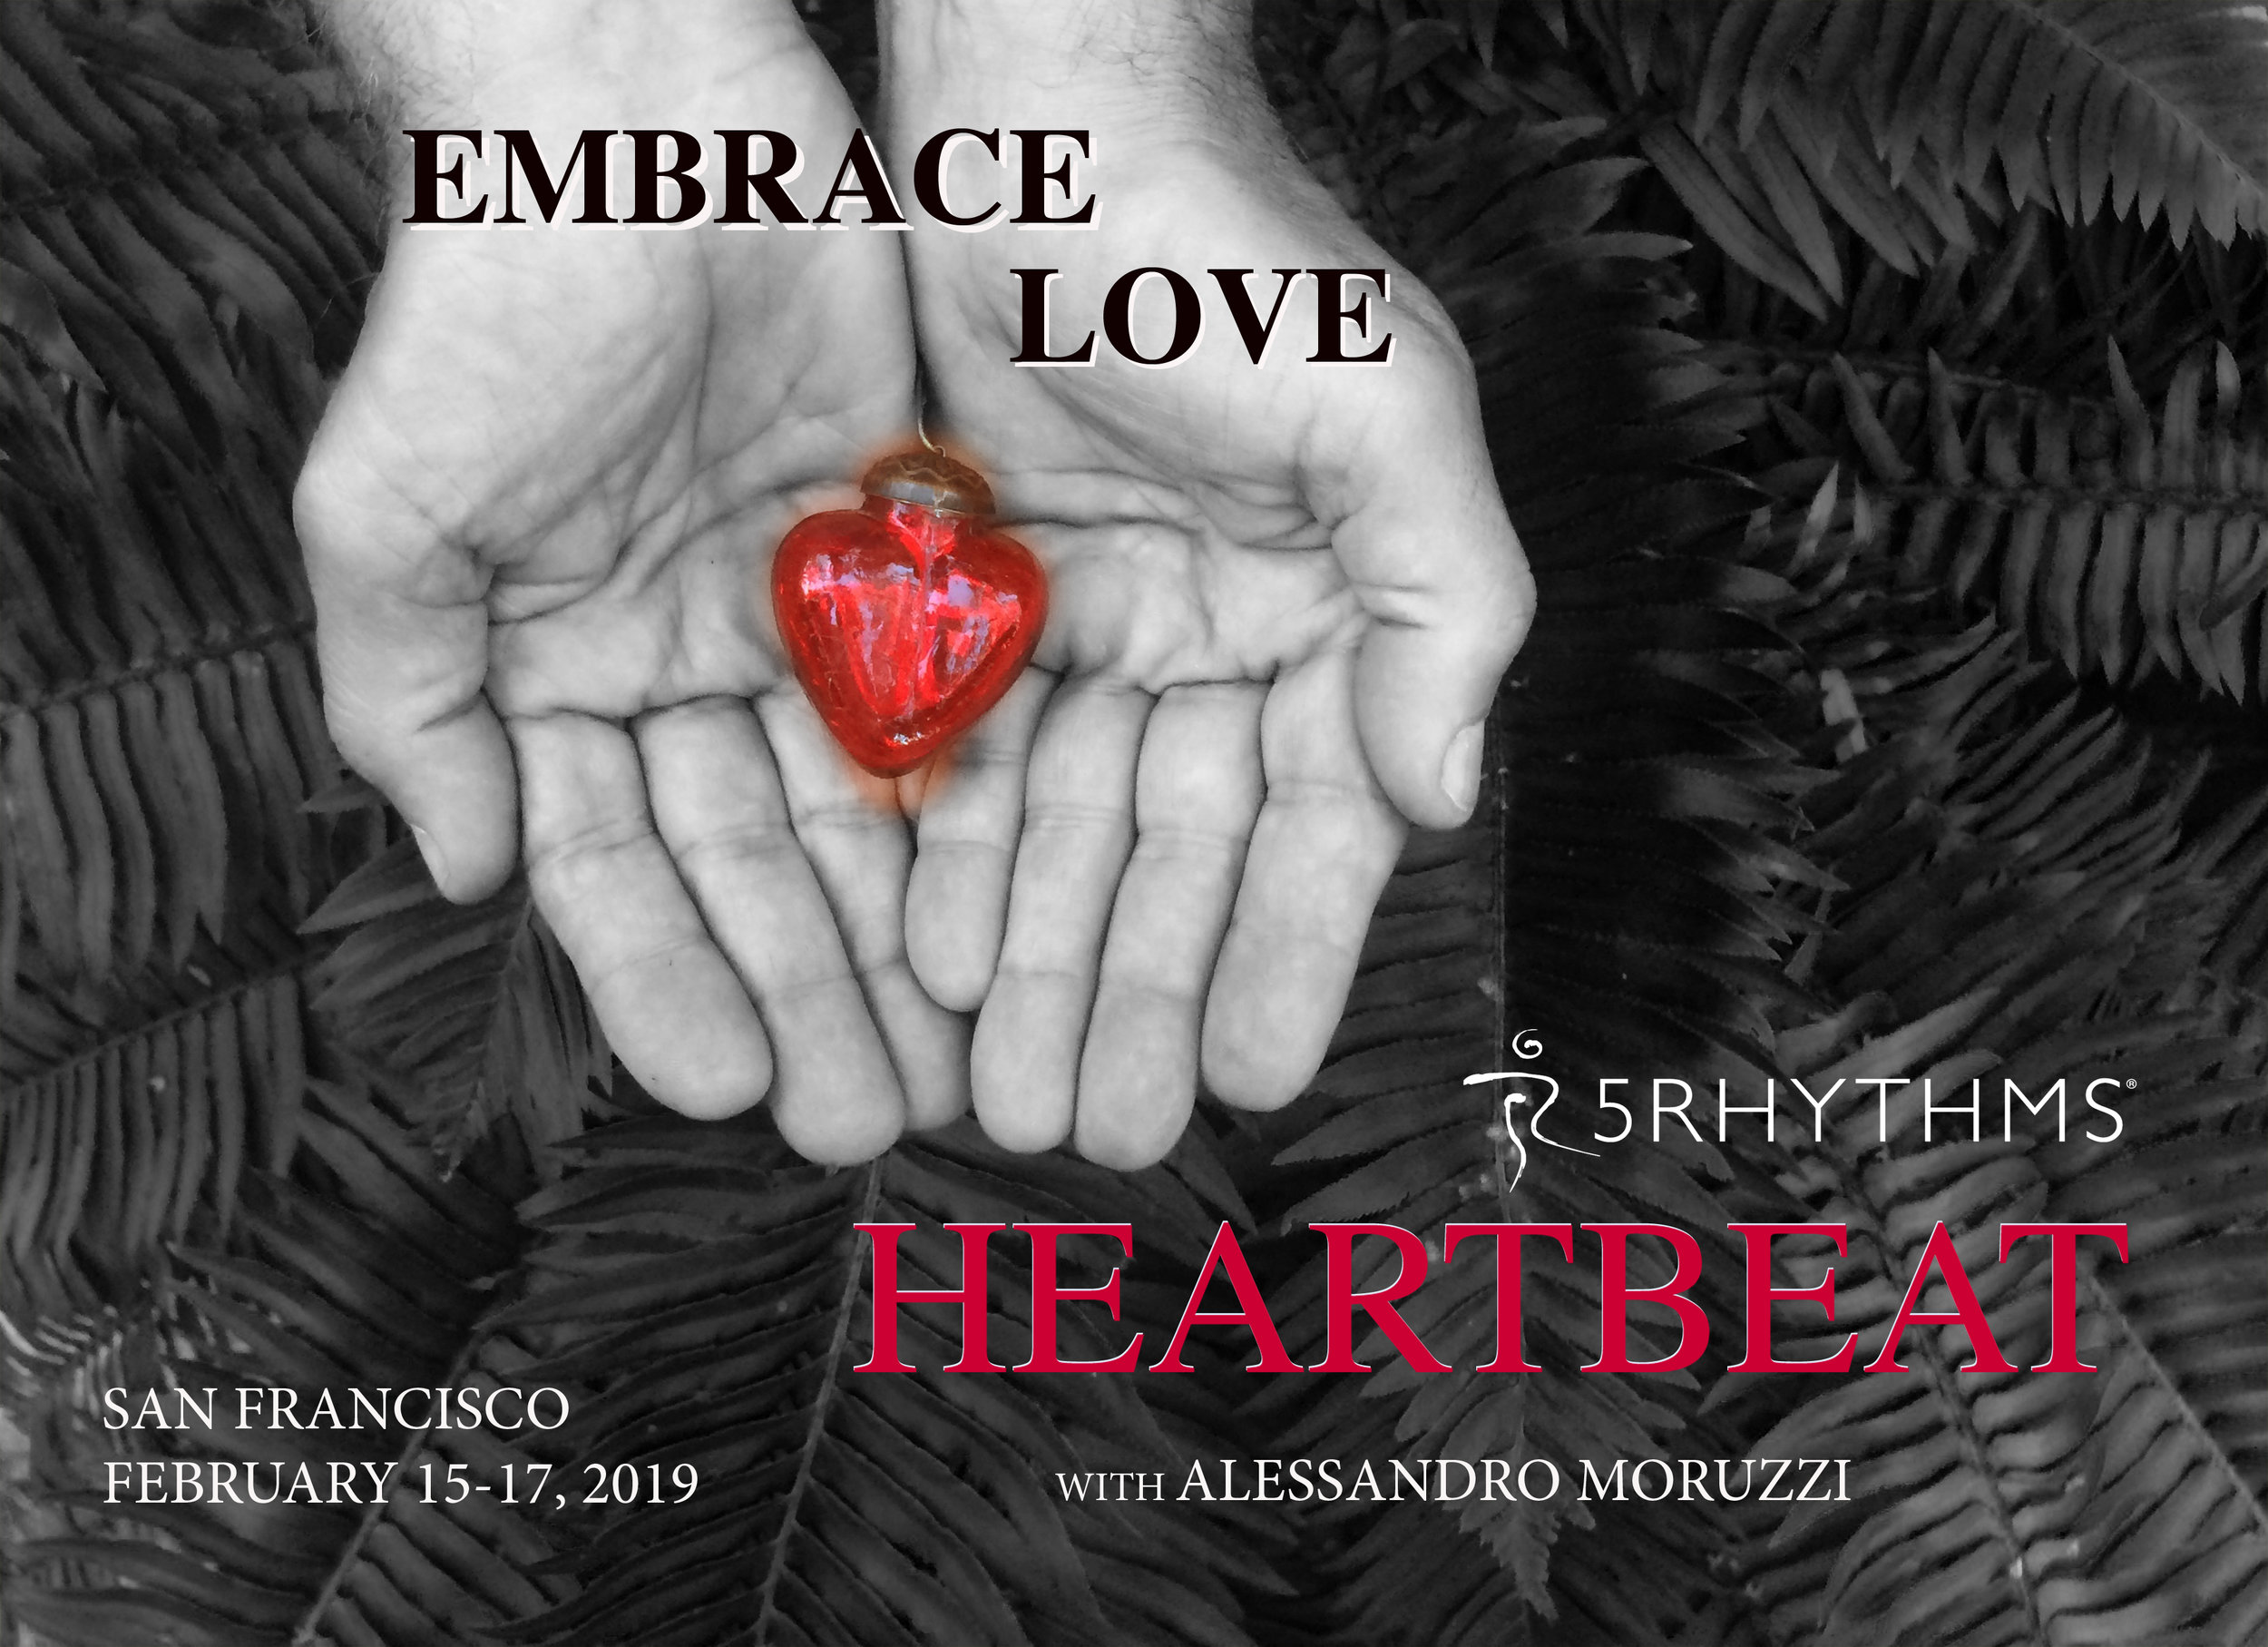 EMBRACE LOVE Feb 2019 postcard image.jpg